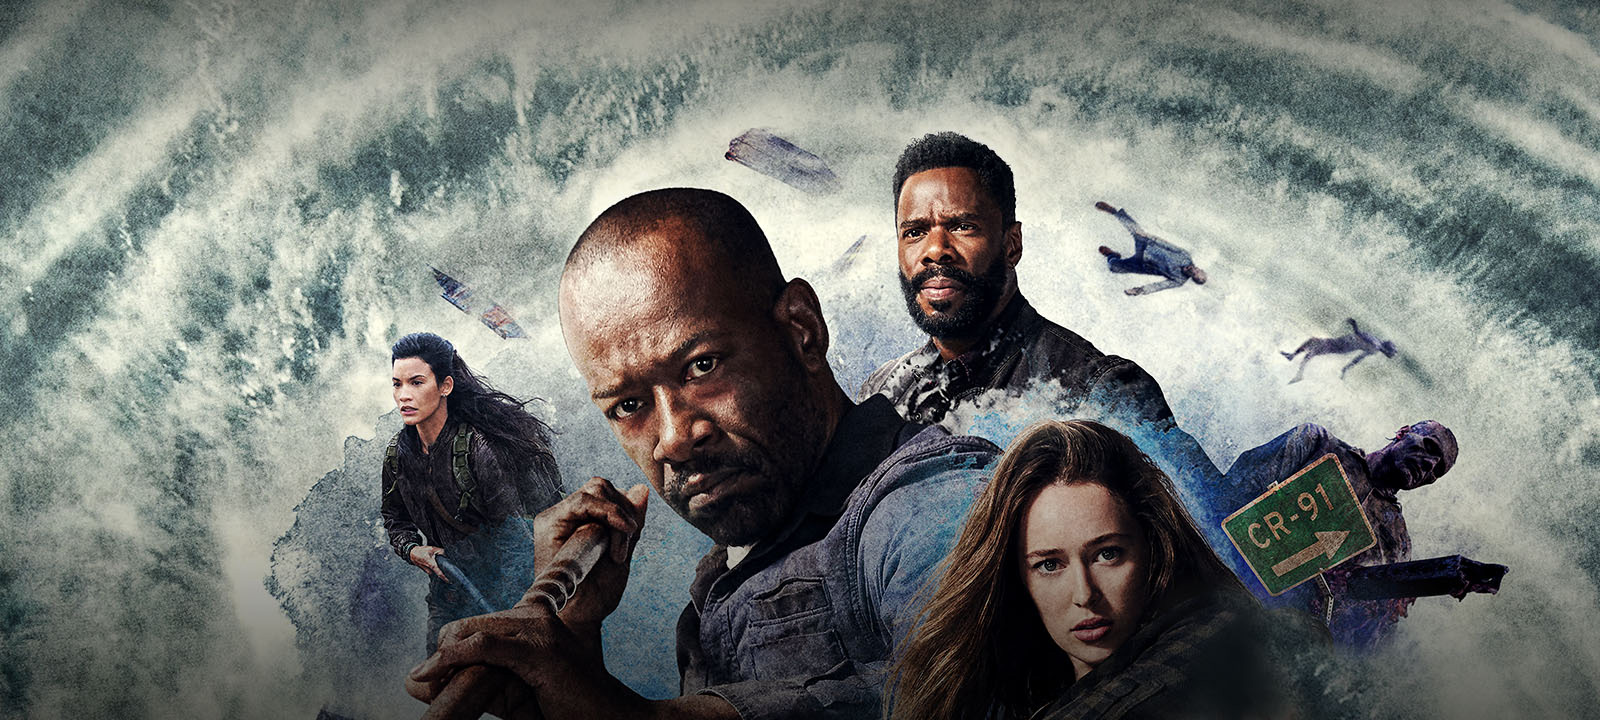 fear-the-walking-dead-season-4b-key-art-morgan-james-alicia-debnam-carey-800×600